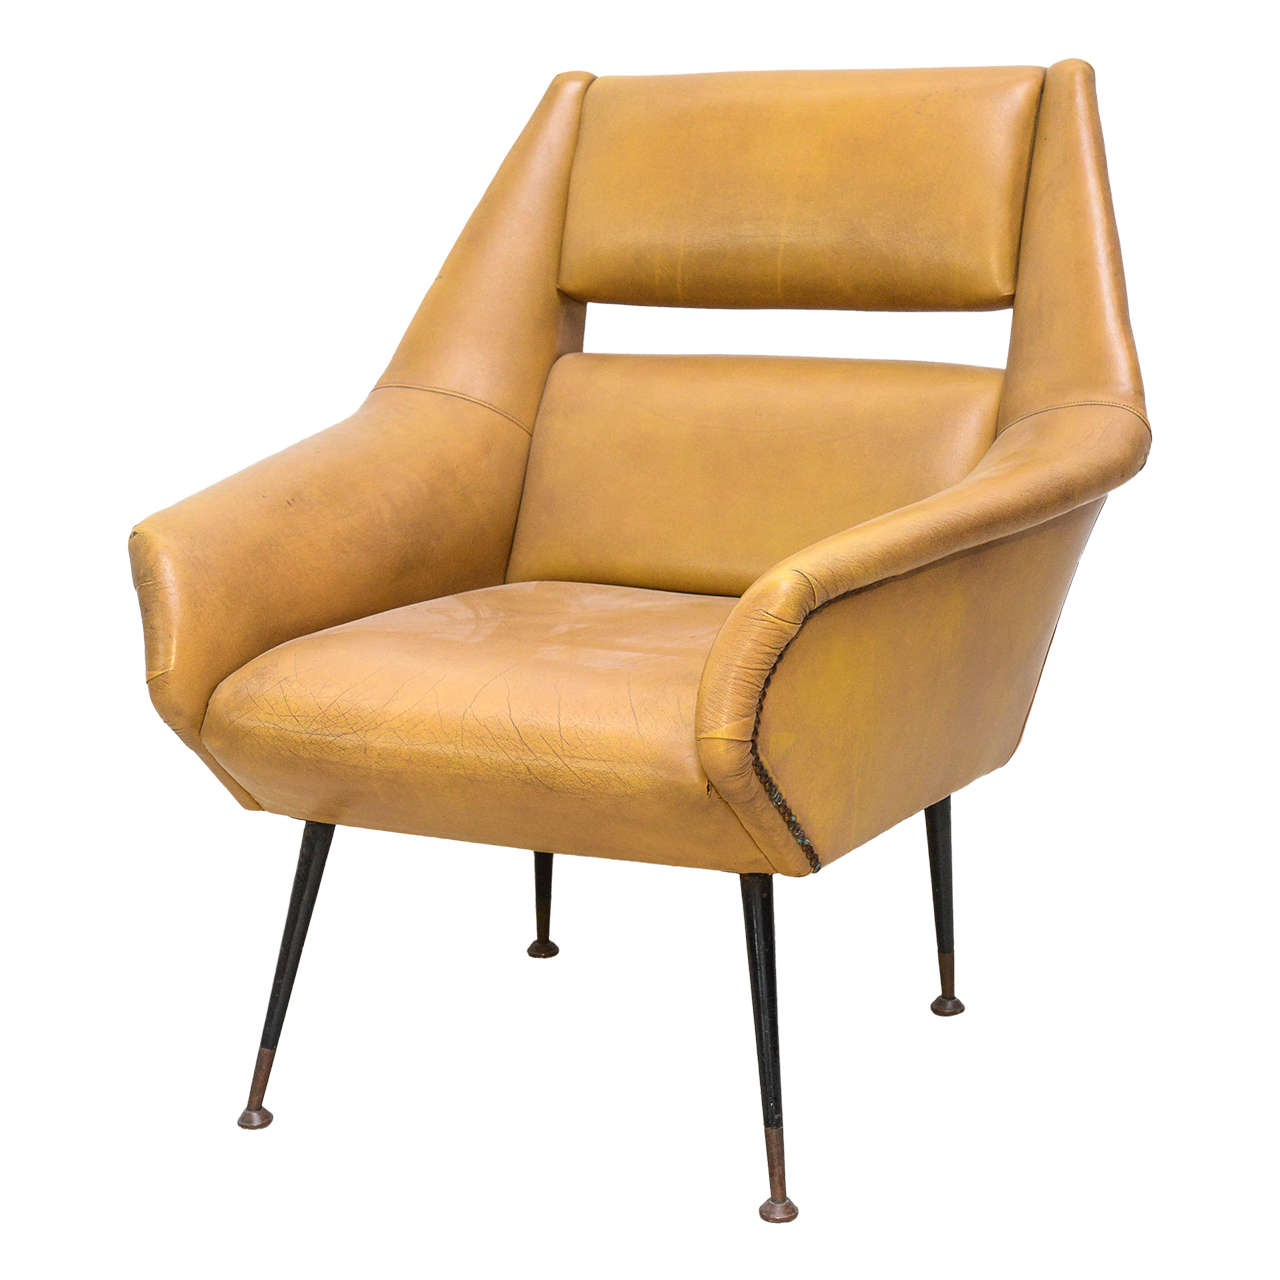 Italian Modern Brass, Enamel and Leather Armchair, Style of Gio Ponti